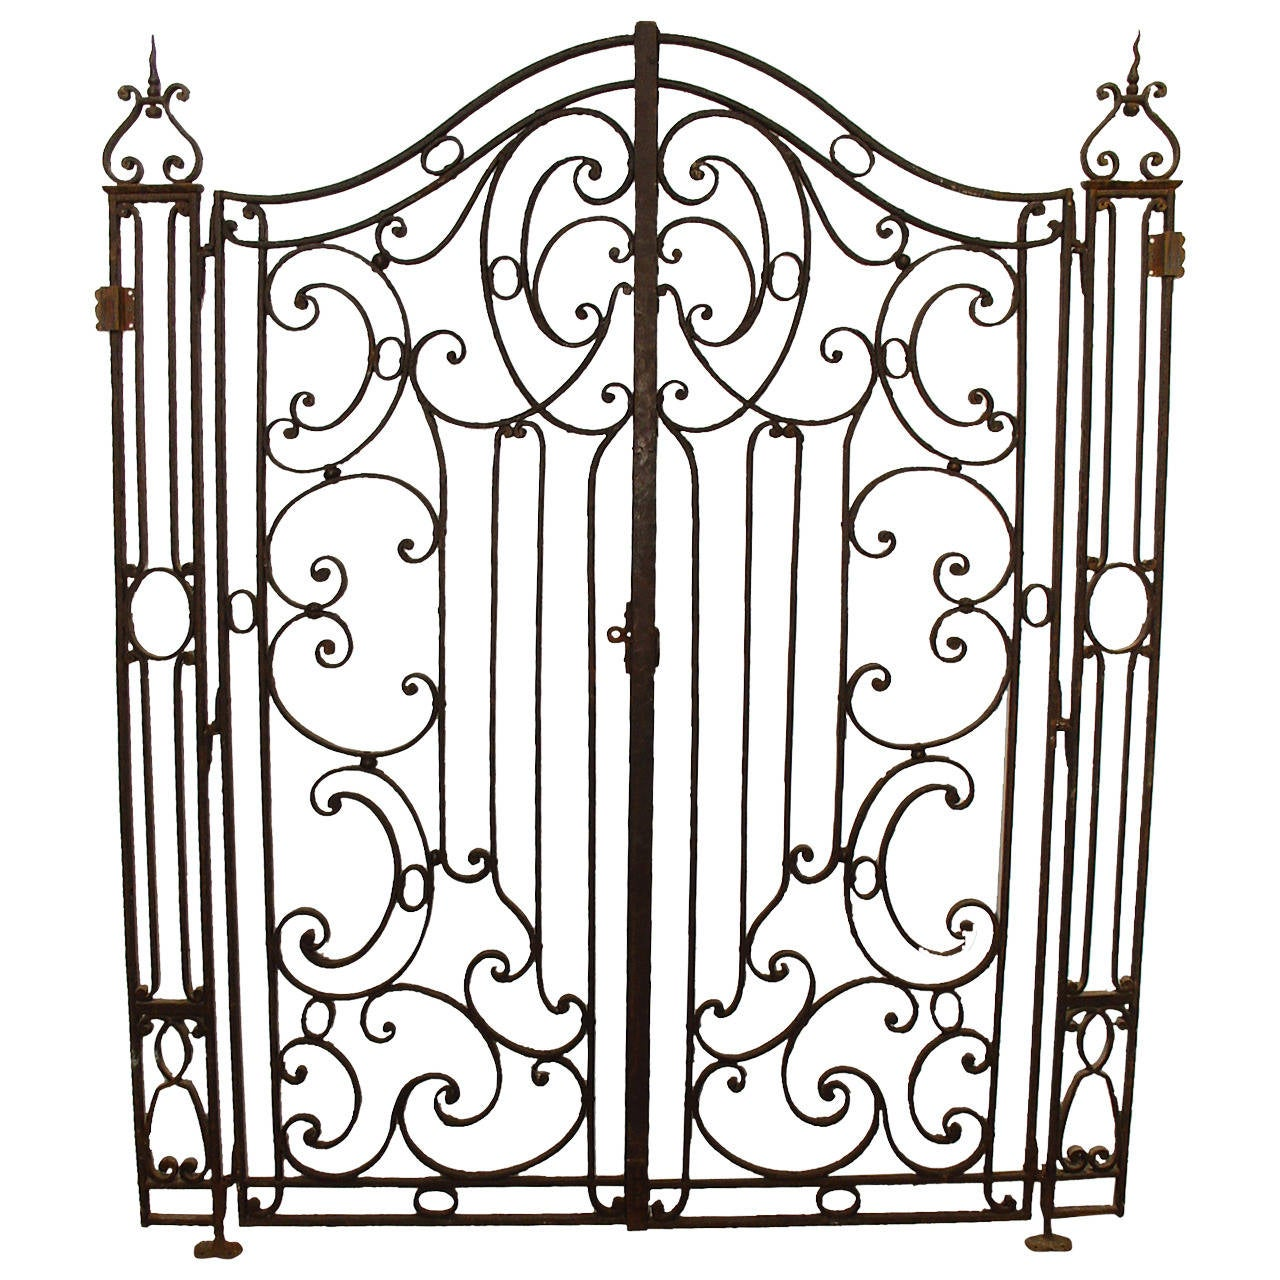 18th century iron gates from france at 1stdibs 29th Century 18th century iron gates from france for sale